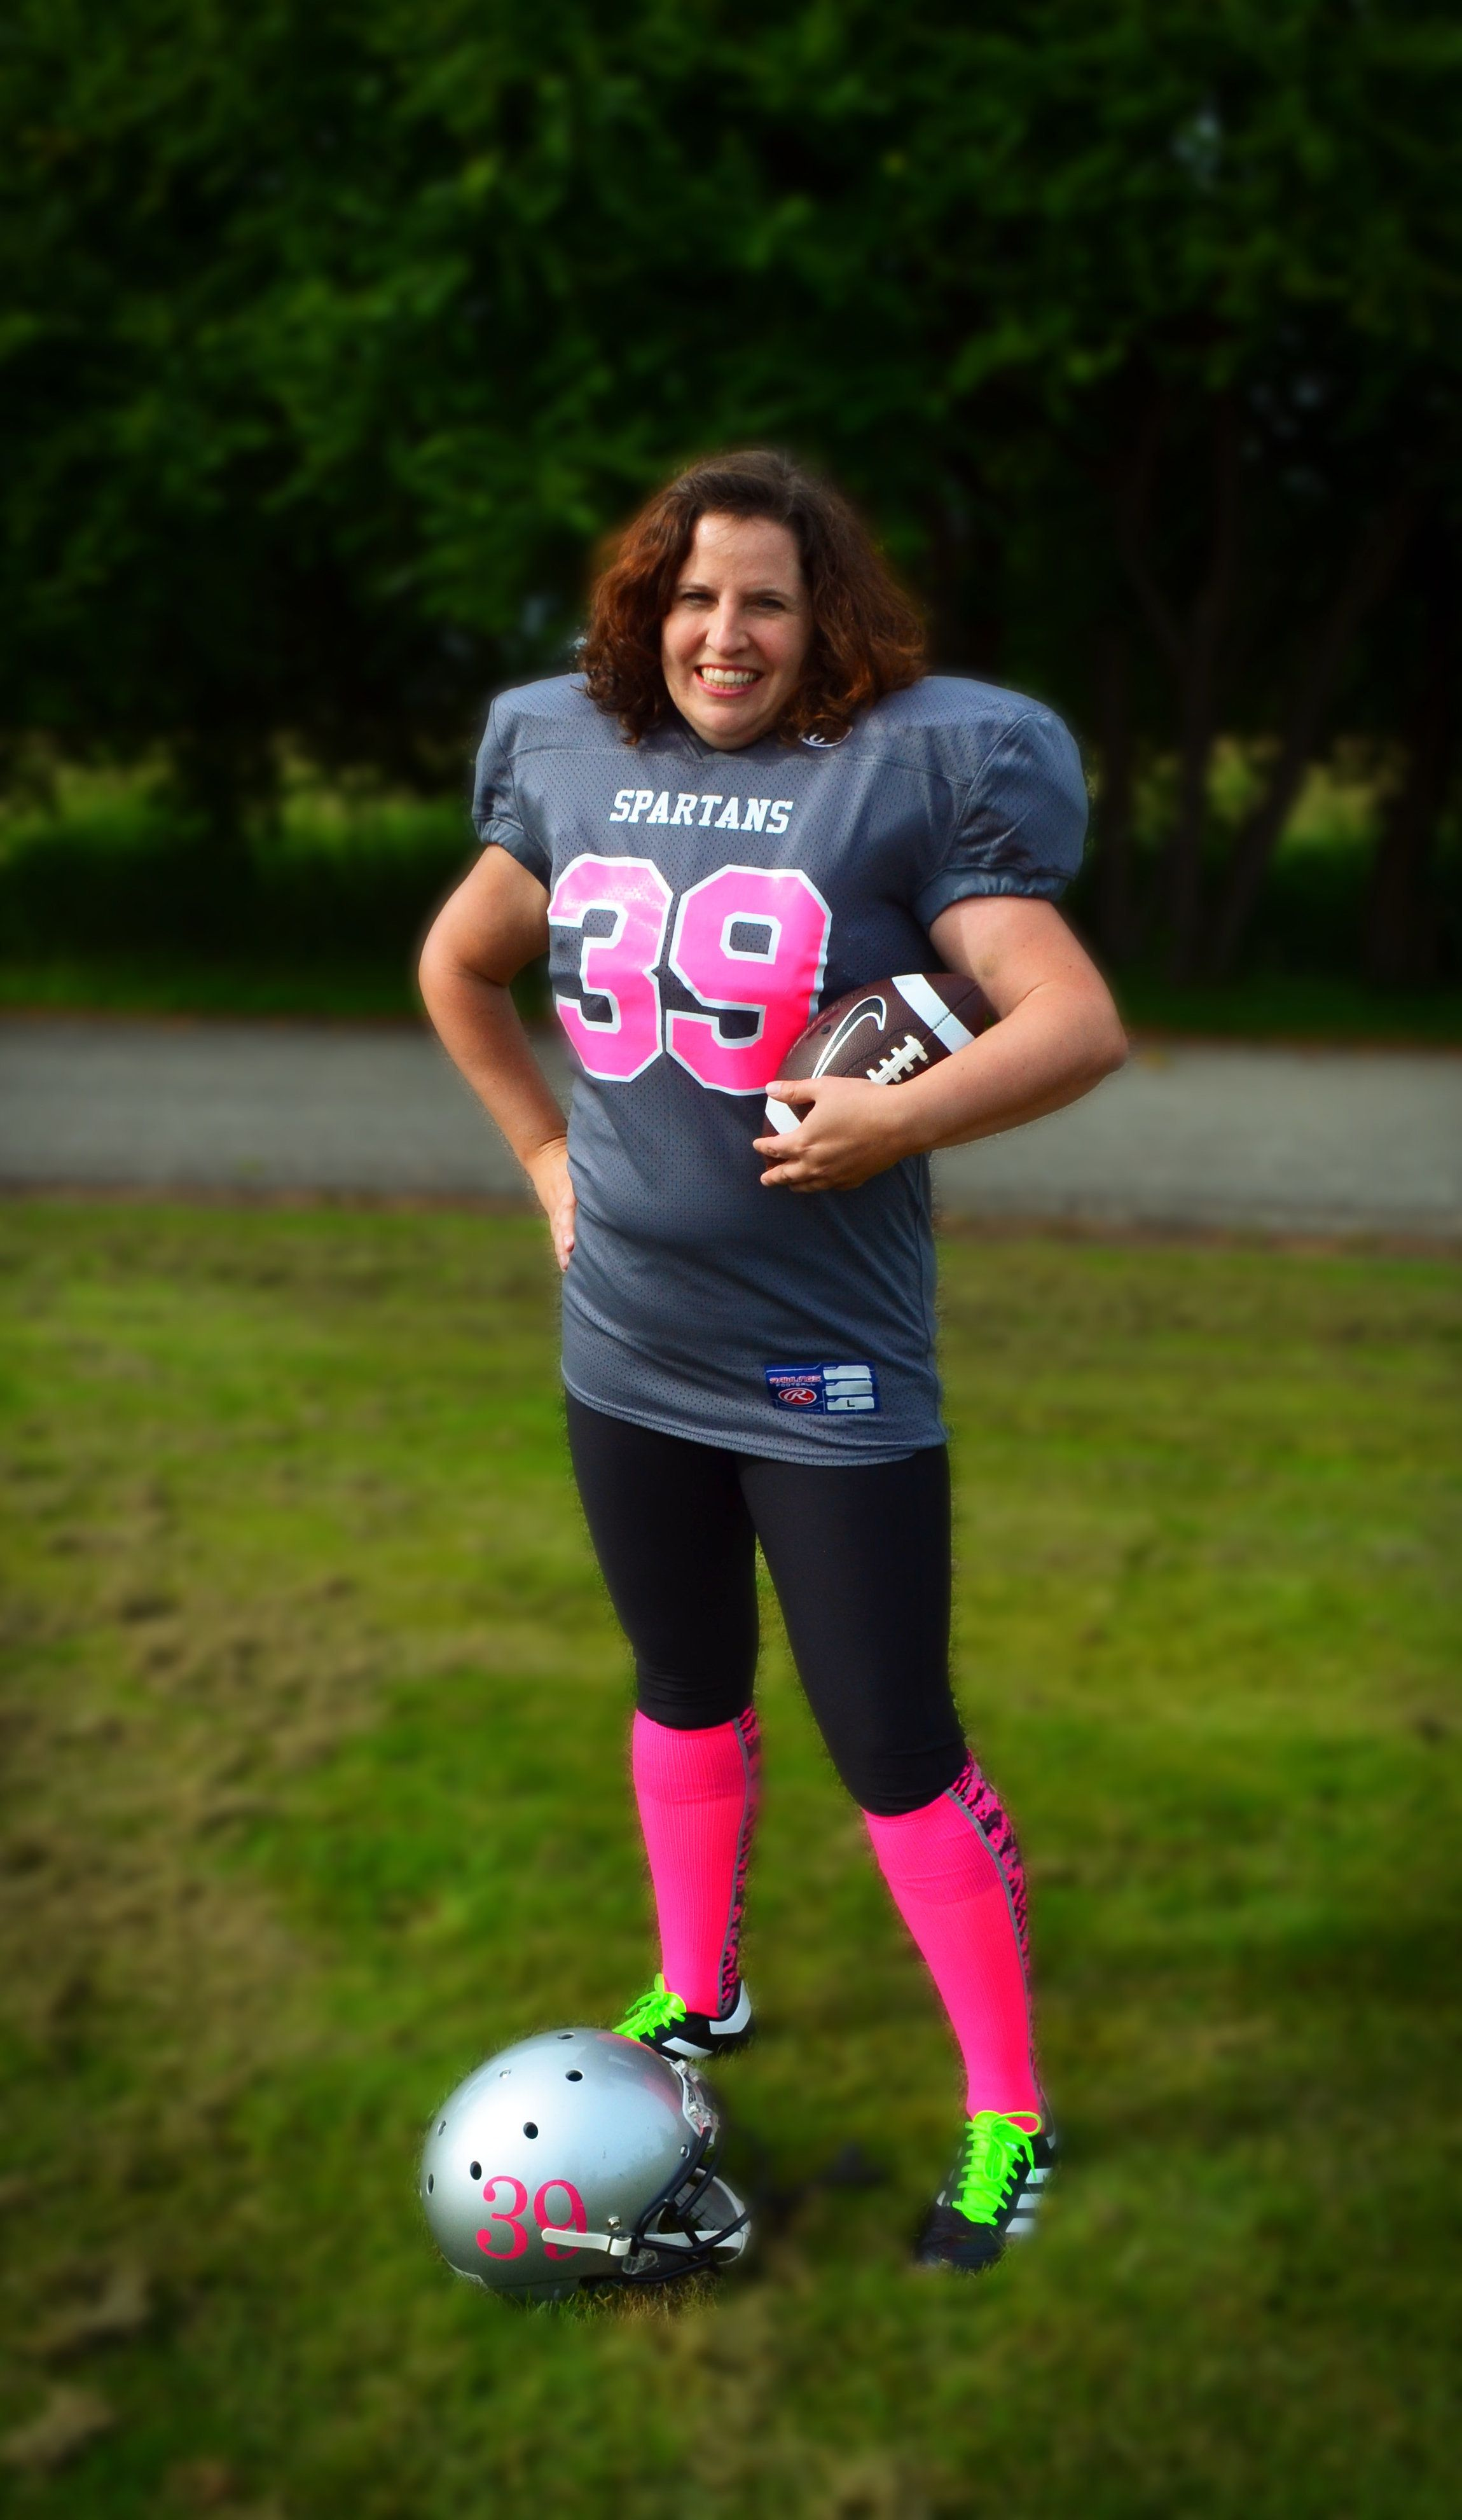 """My """"official"""" football photo. I chose number 39 for obvious reasons."""